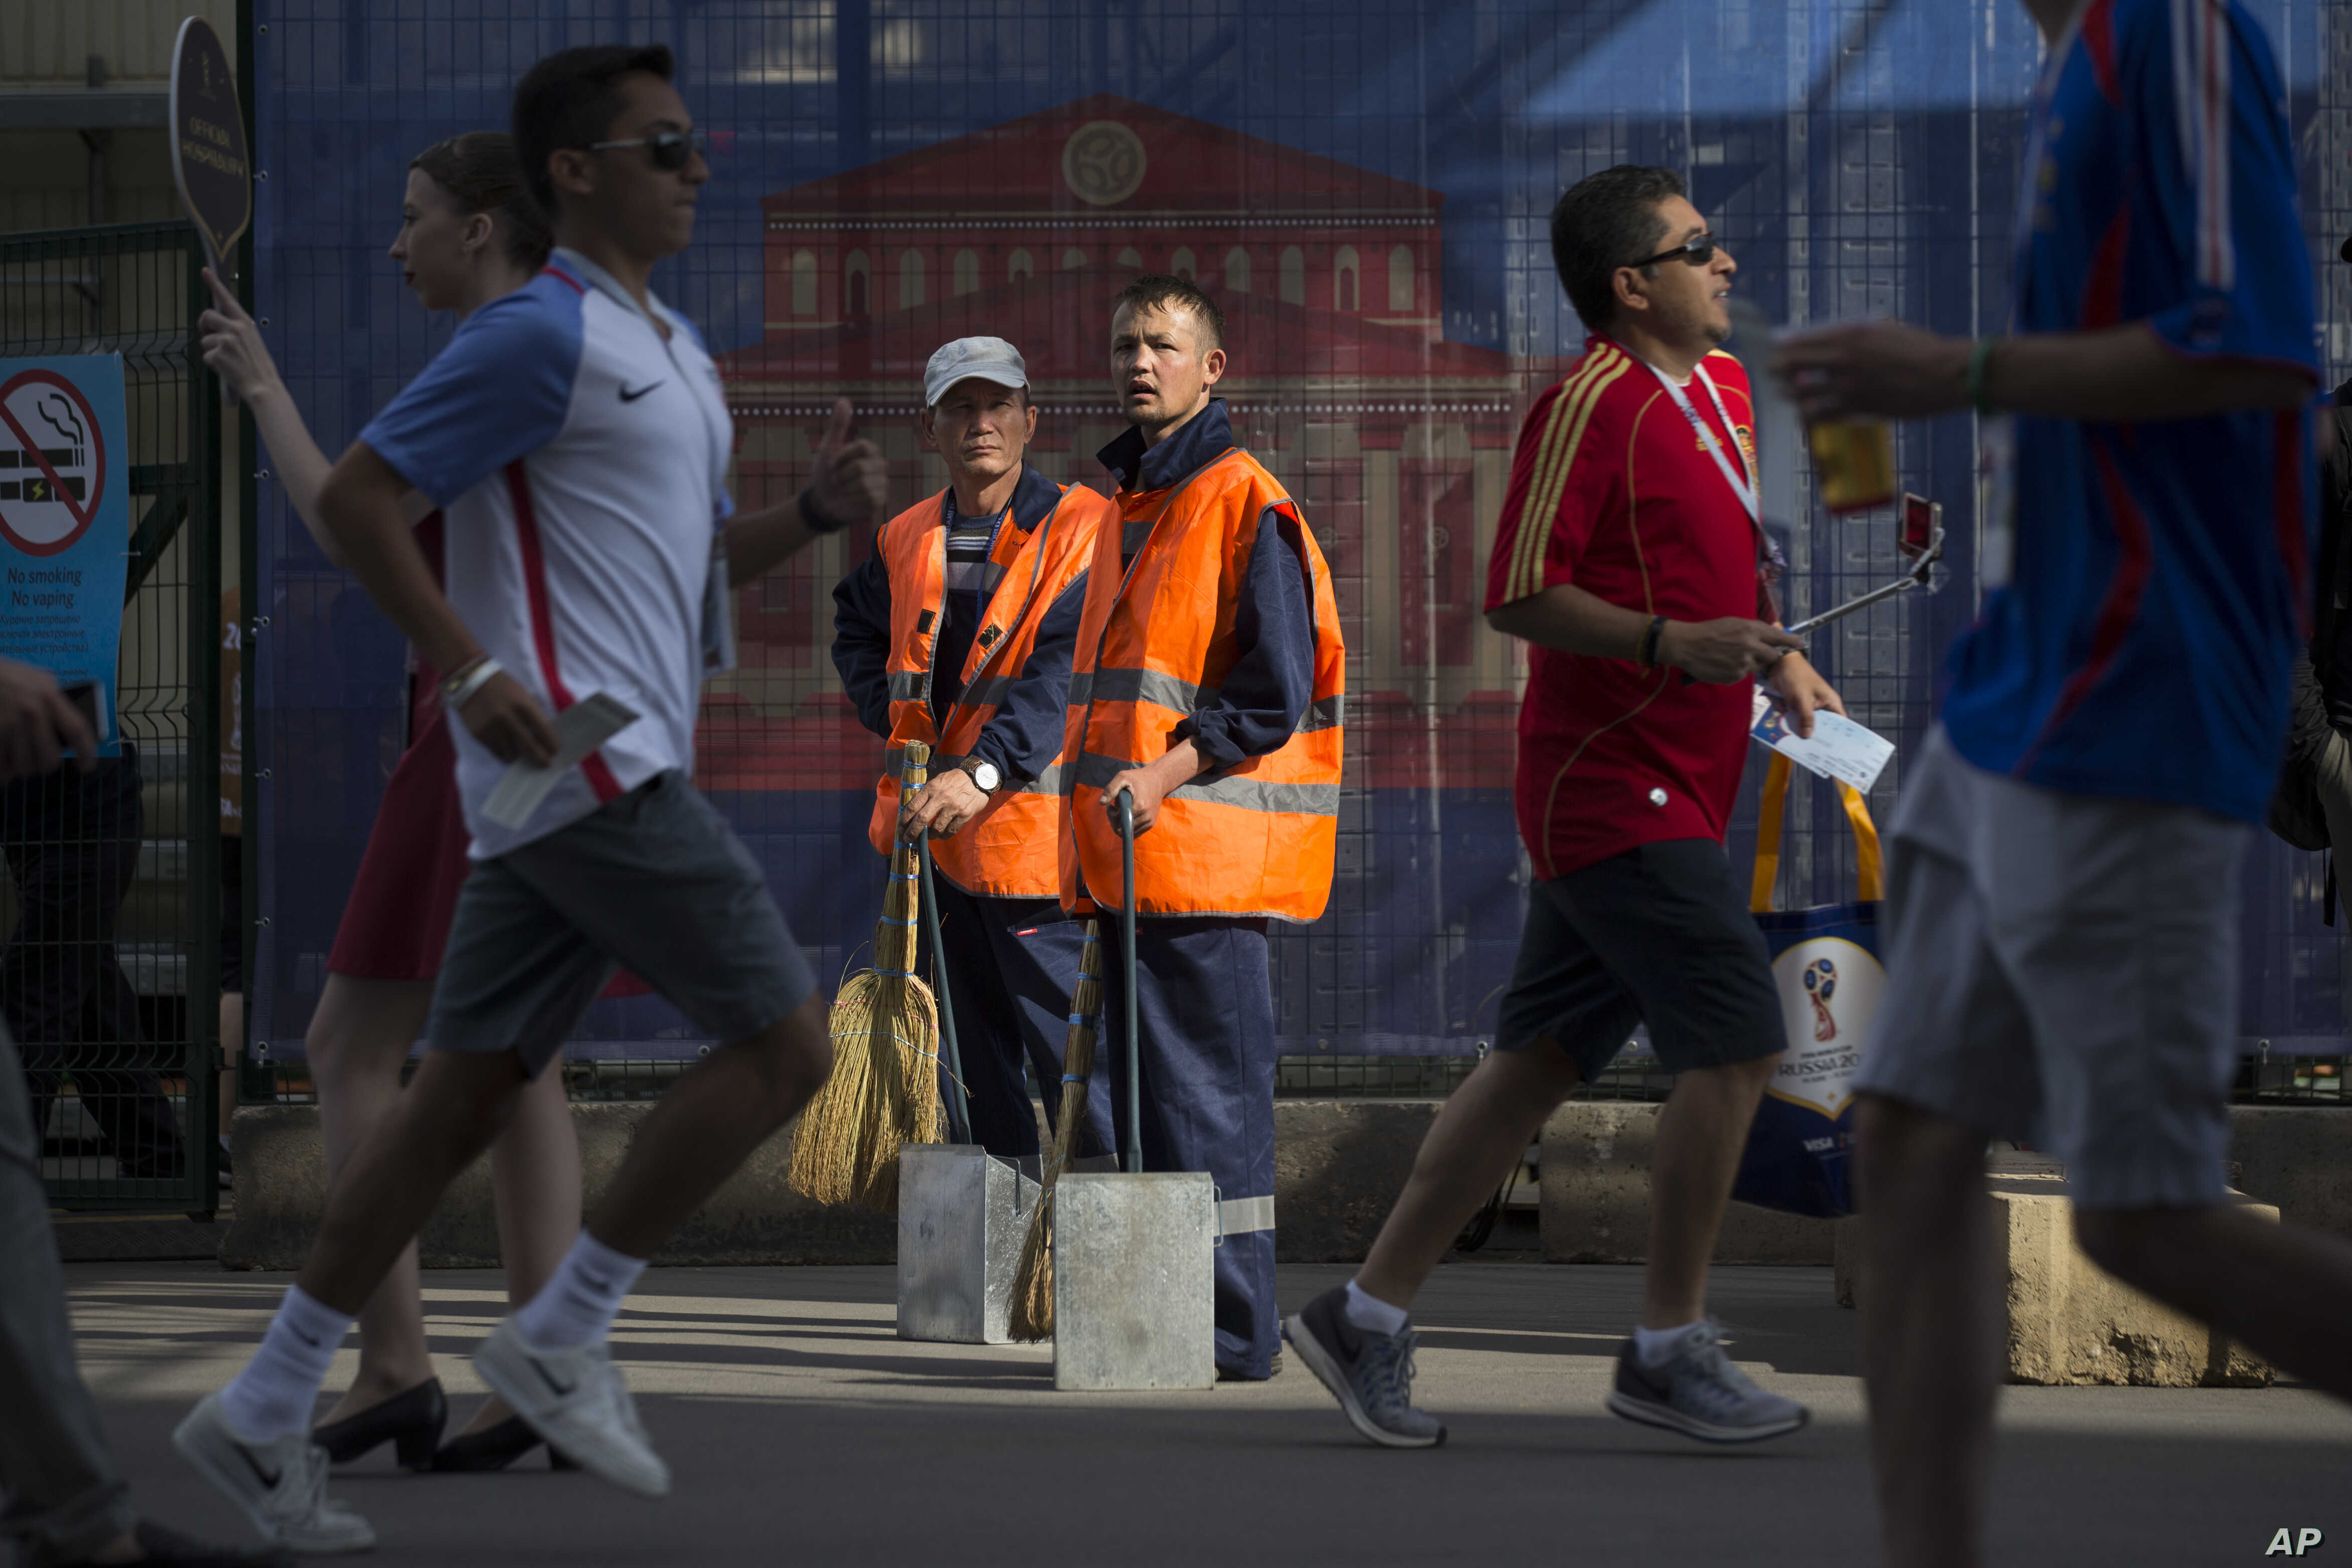 FILE - Two migrant municipal workers stand ready to clean at Moscow's Luzhniki Stadium in Moscow, Russia, June 26, 2018.